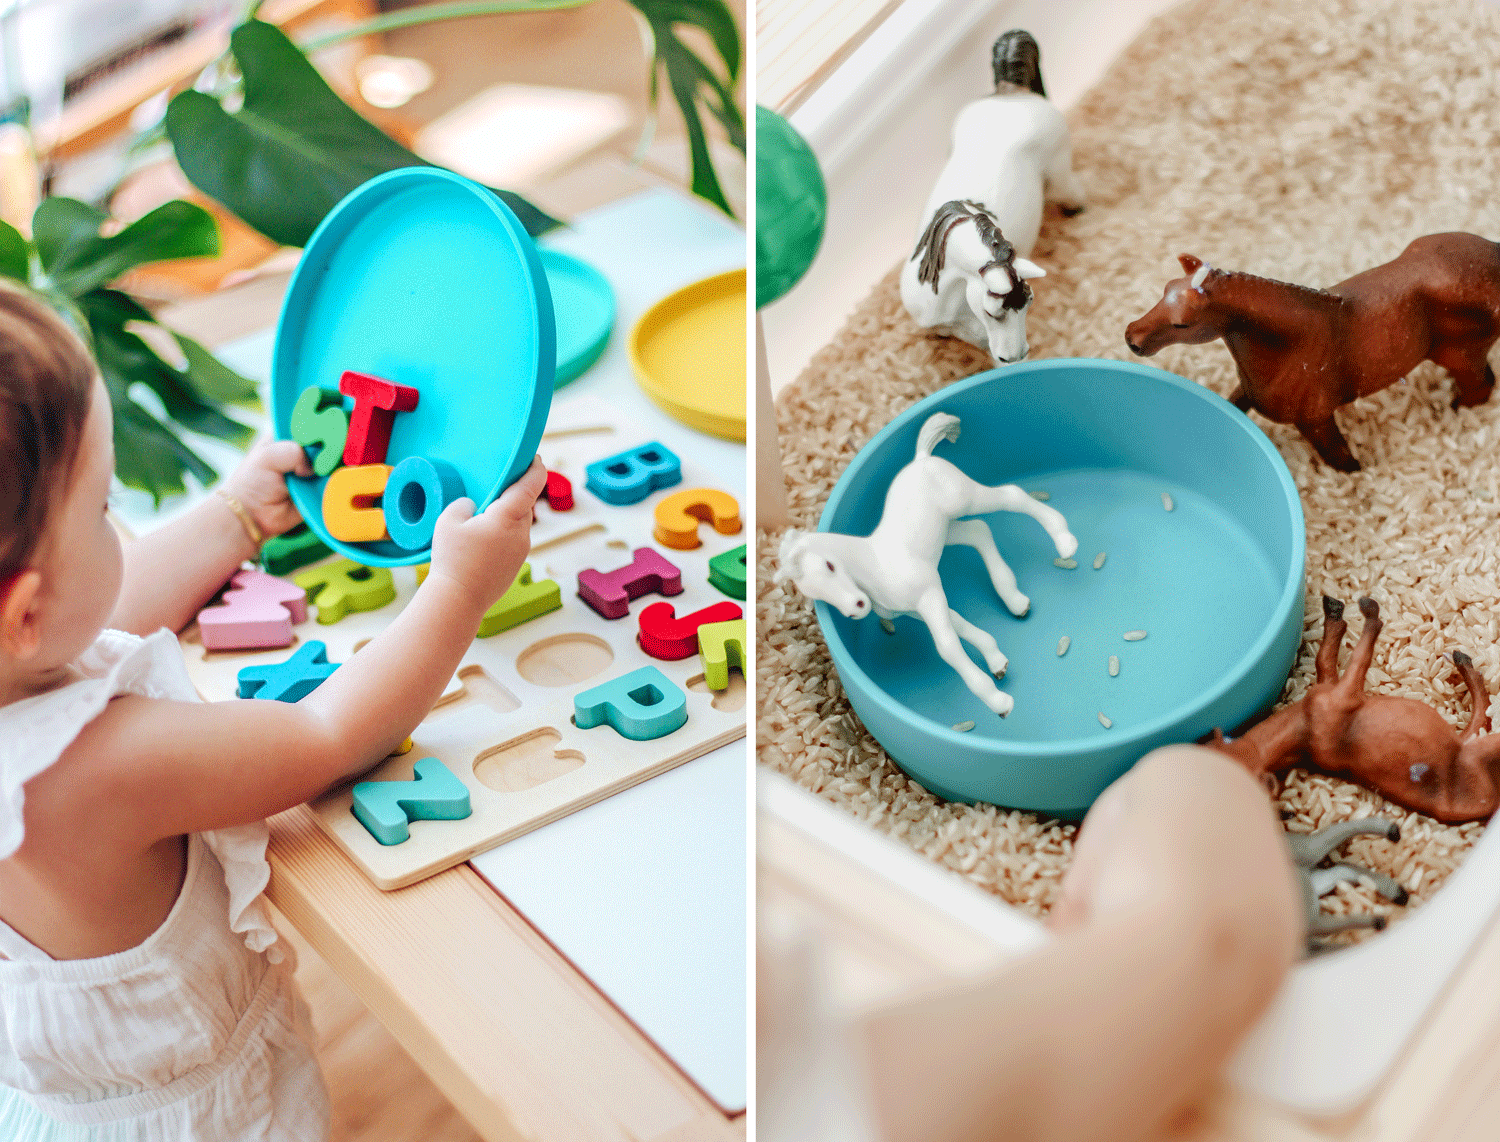 Two images of children engaged in sensory play, using Bobo & Boo products